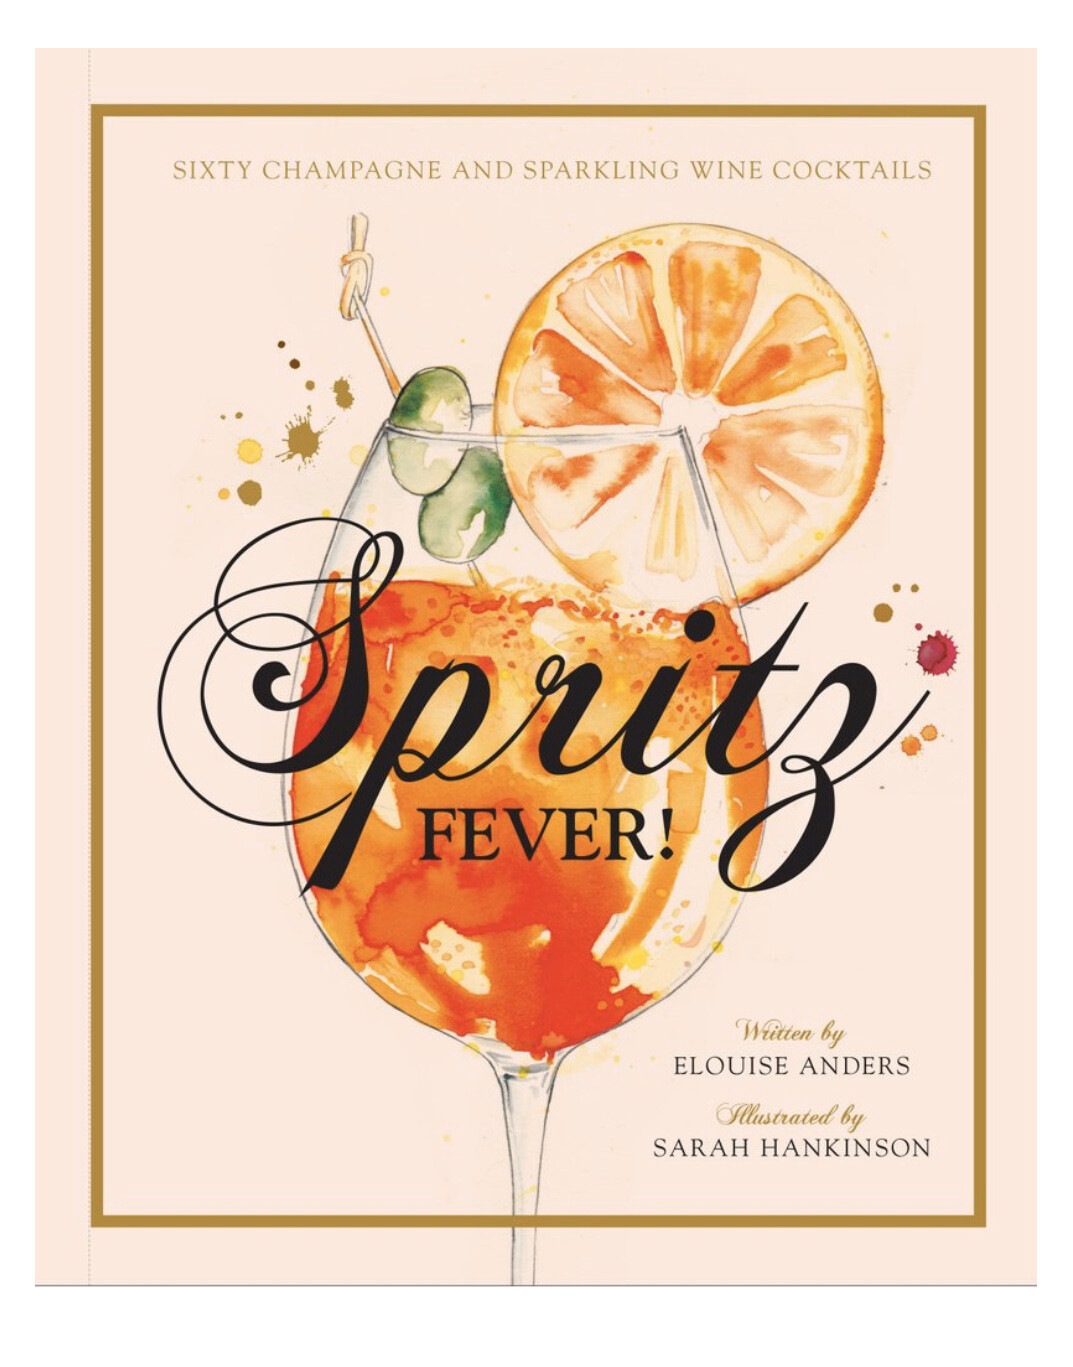 BOOK - SPRITZ FEVER!